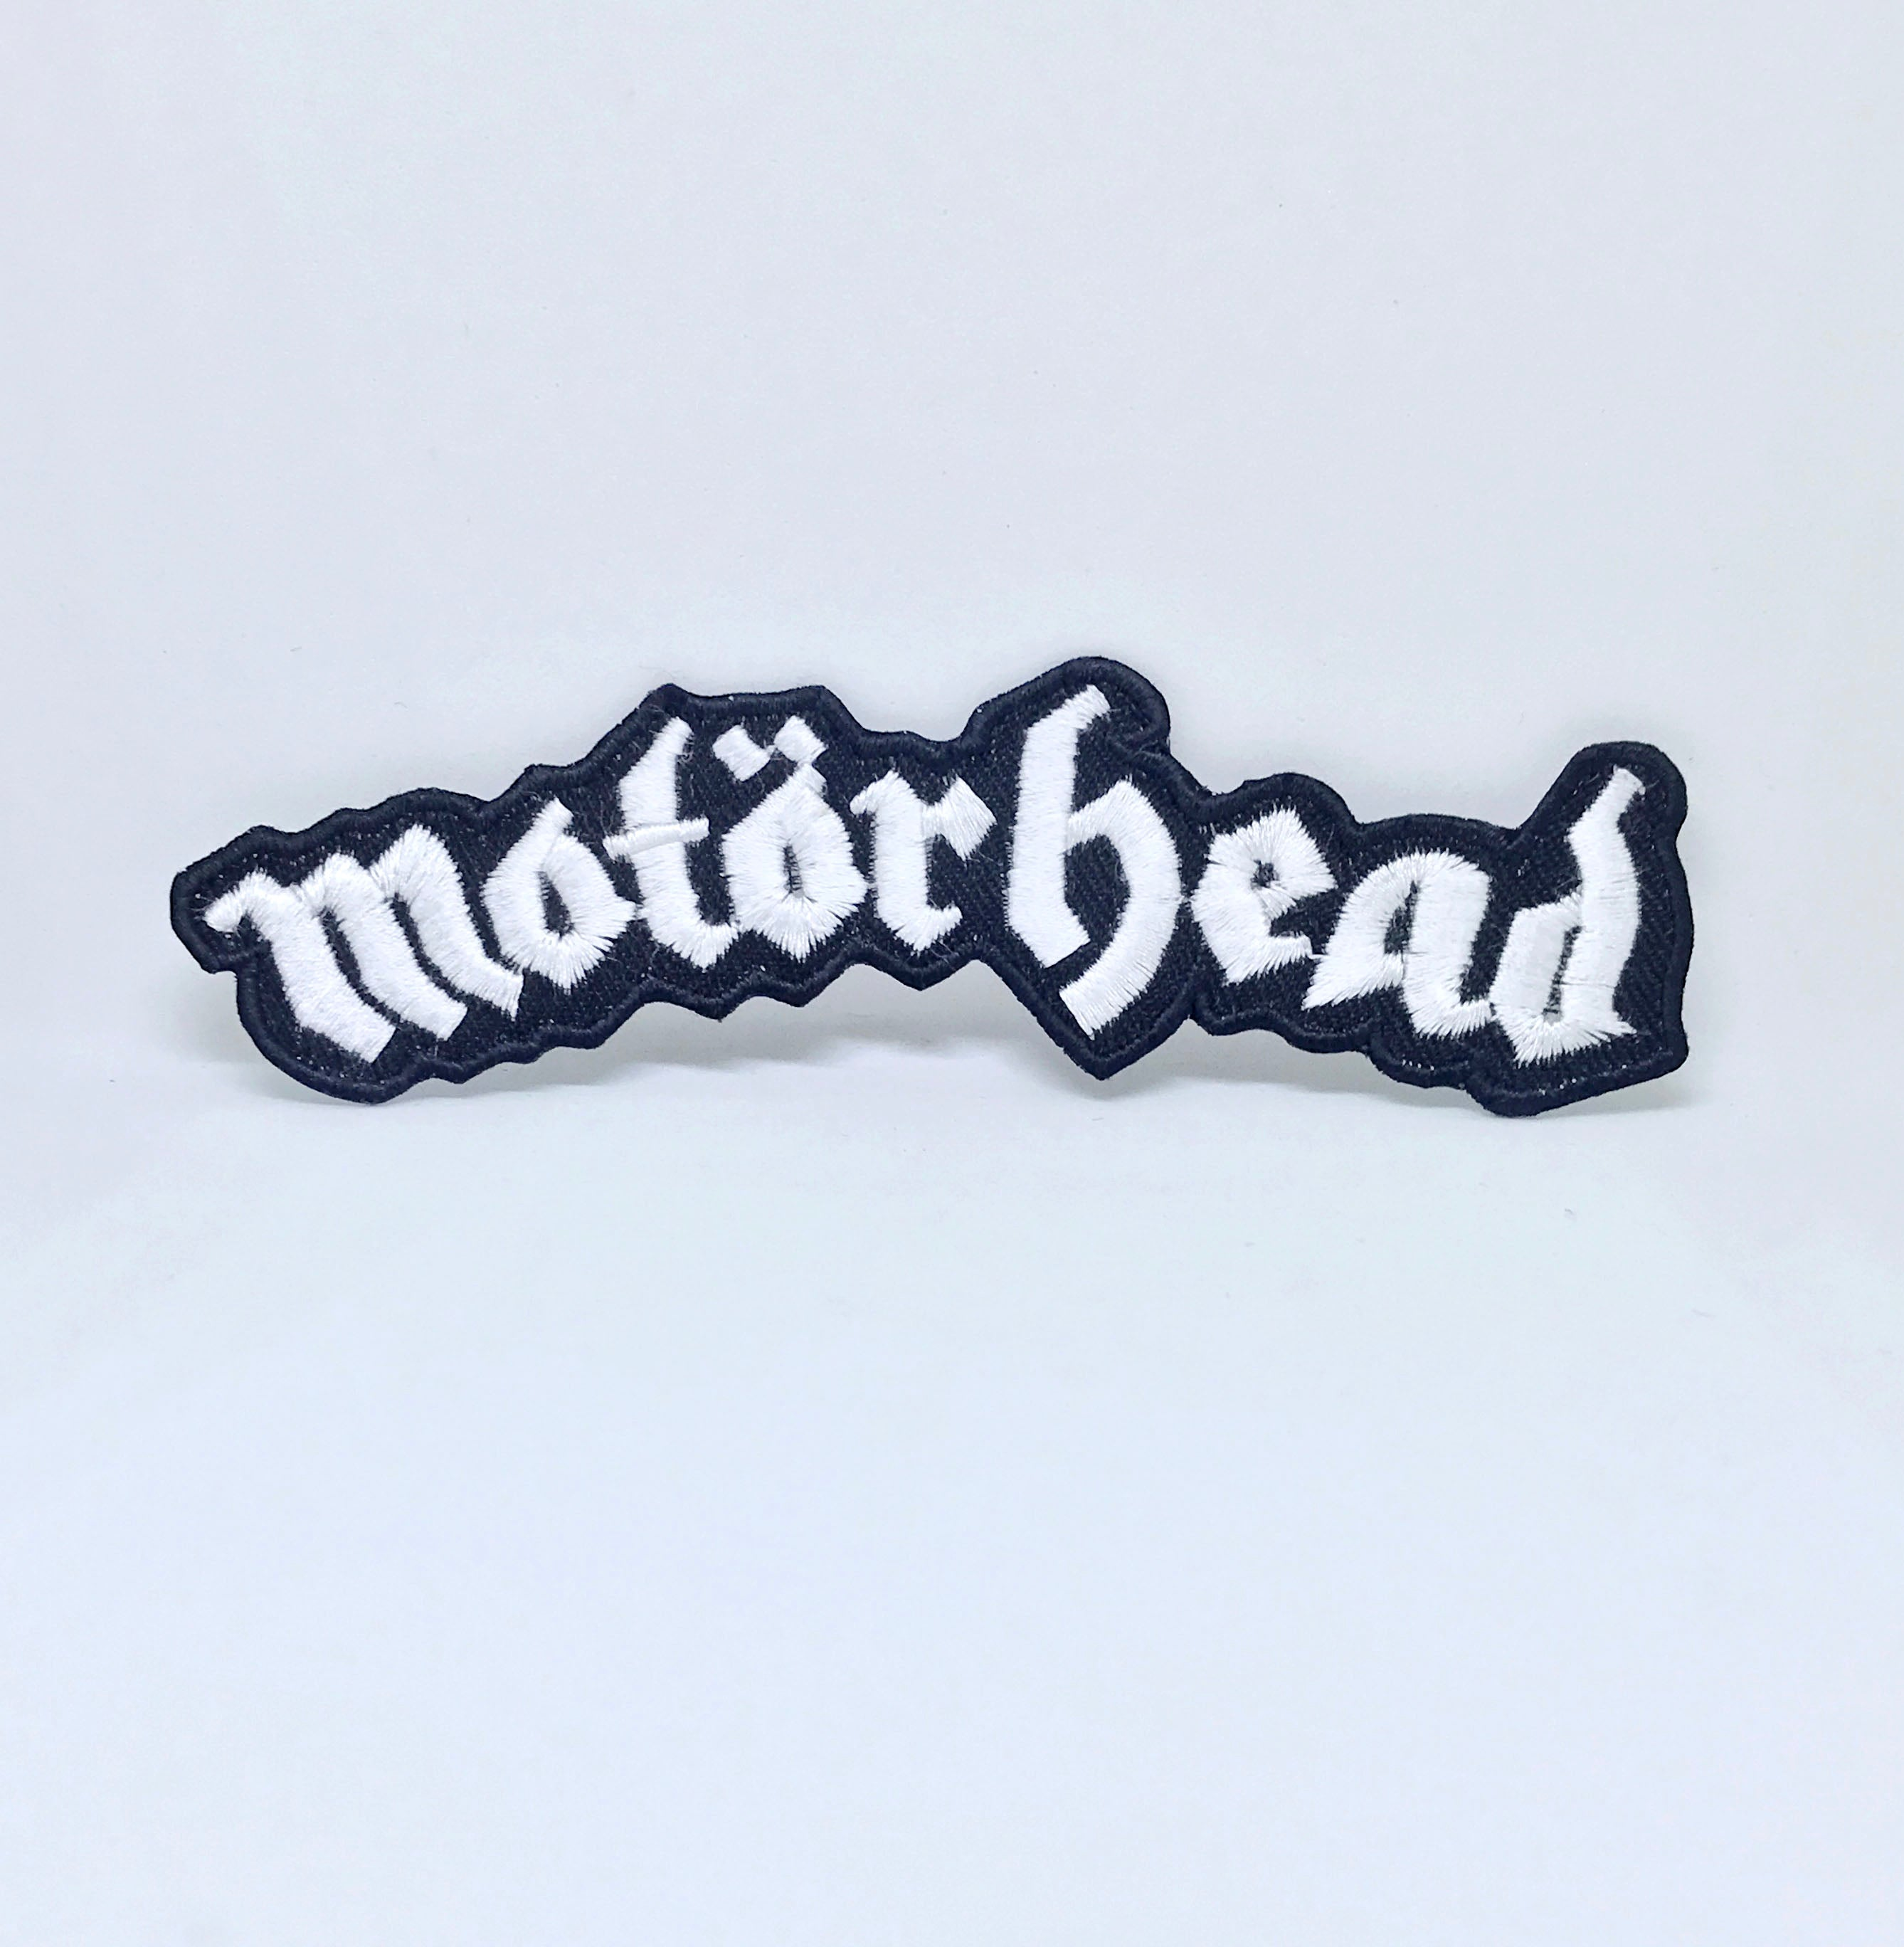 Motorhead Band Rock Metal Music Iron/Sew on Embroidered Patch Collection - Motorhead Logo Large